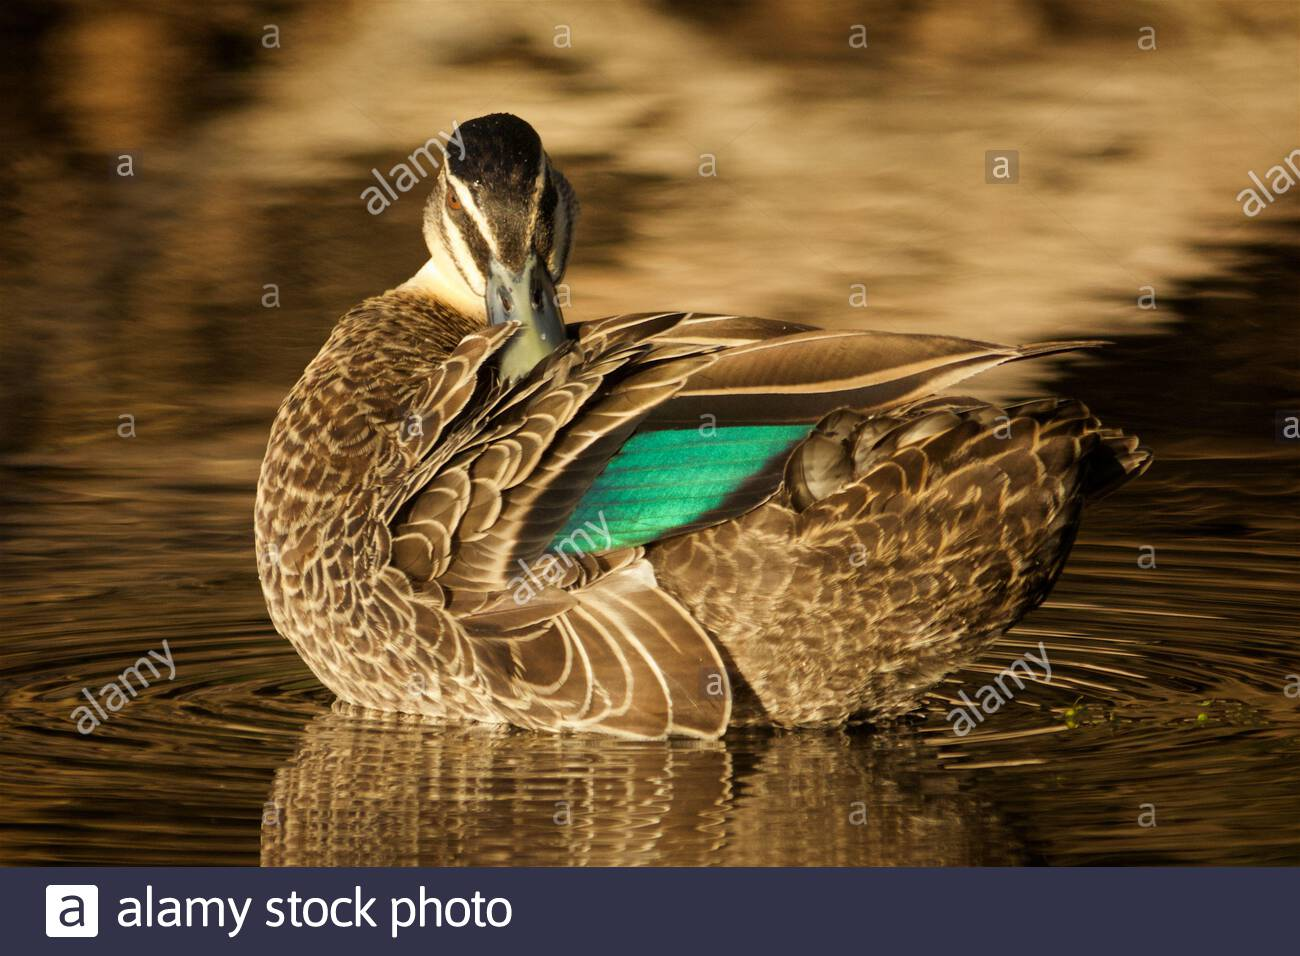 pacific-black-duck-anas-superciliosa-in-late-afternoon-light-with-beak-tucked-in-feathers-2B9CBNE.jpg